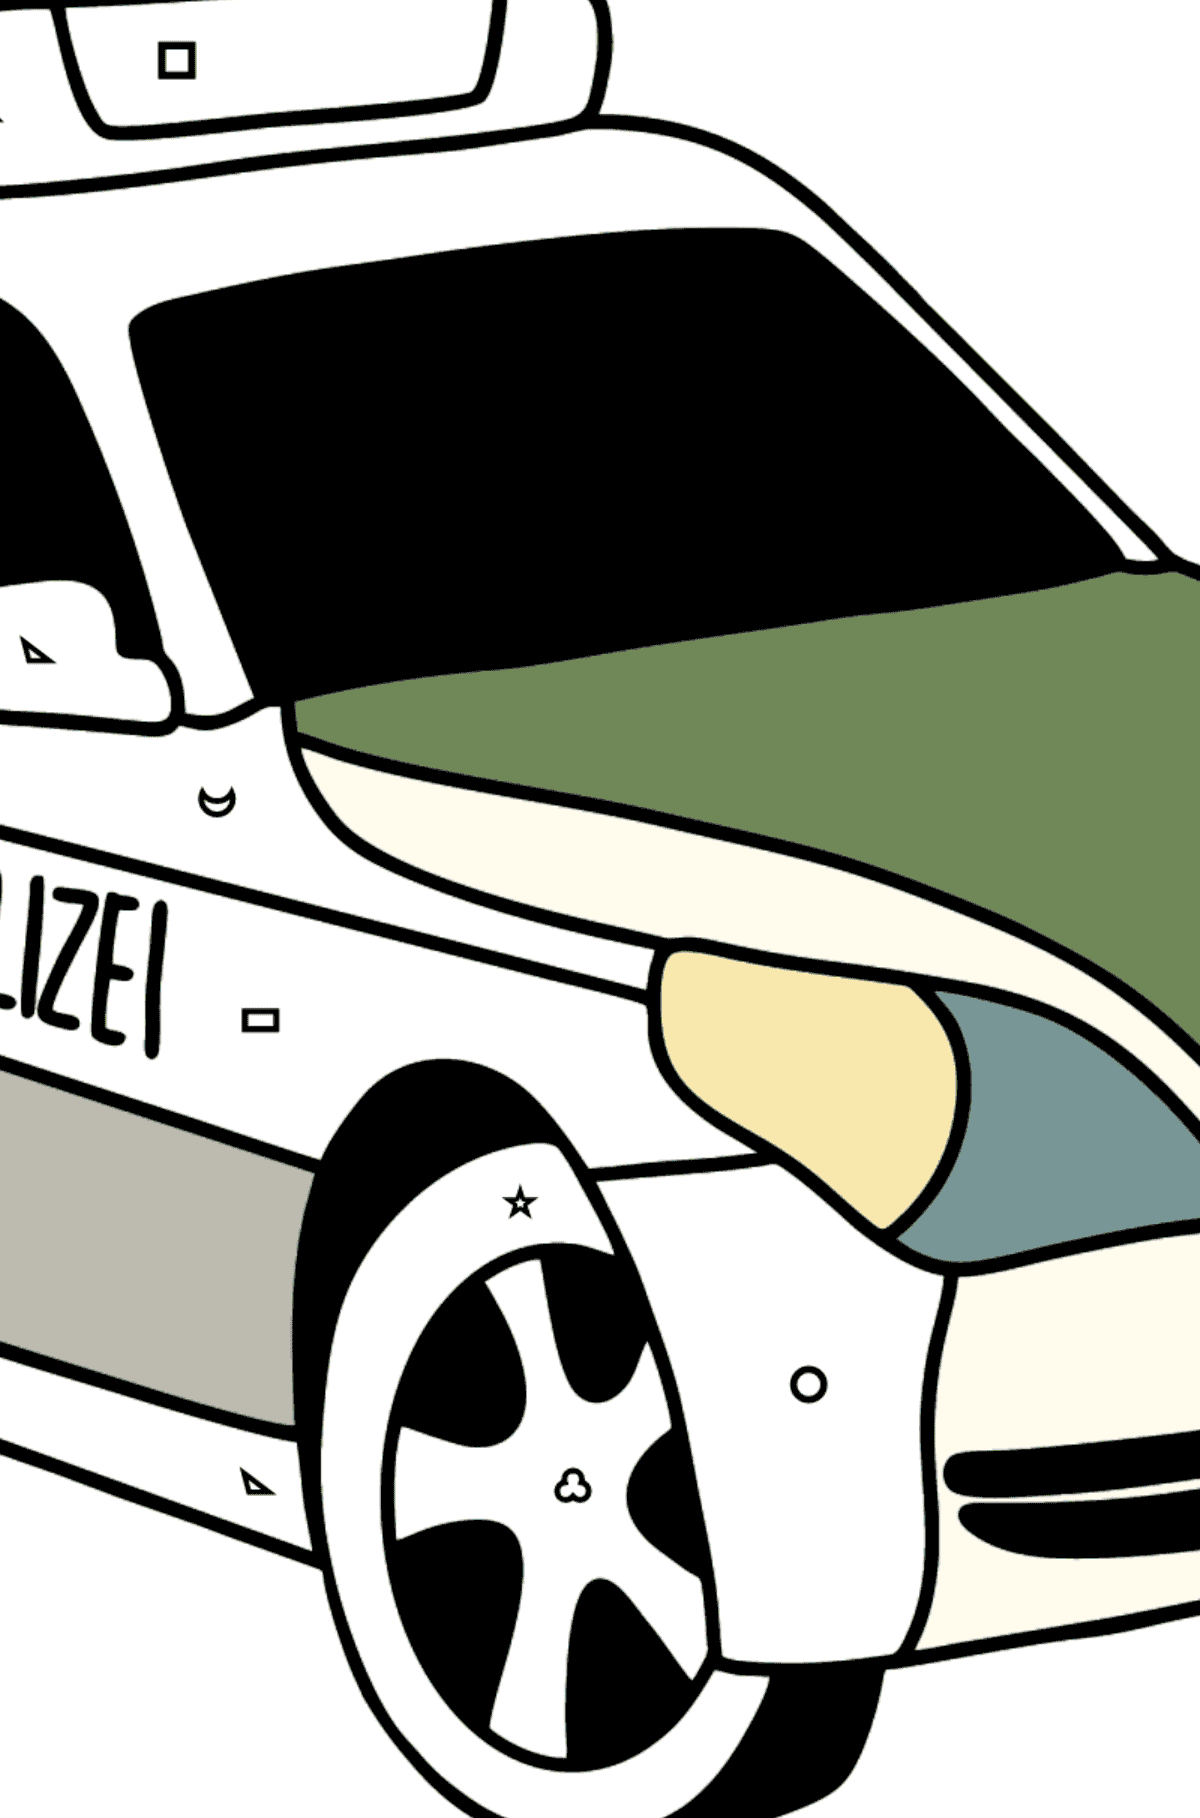 Police Car in Germany coloring page - Coloring by Geometric Shapes for Kids